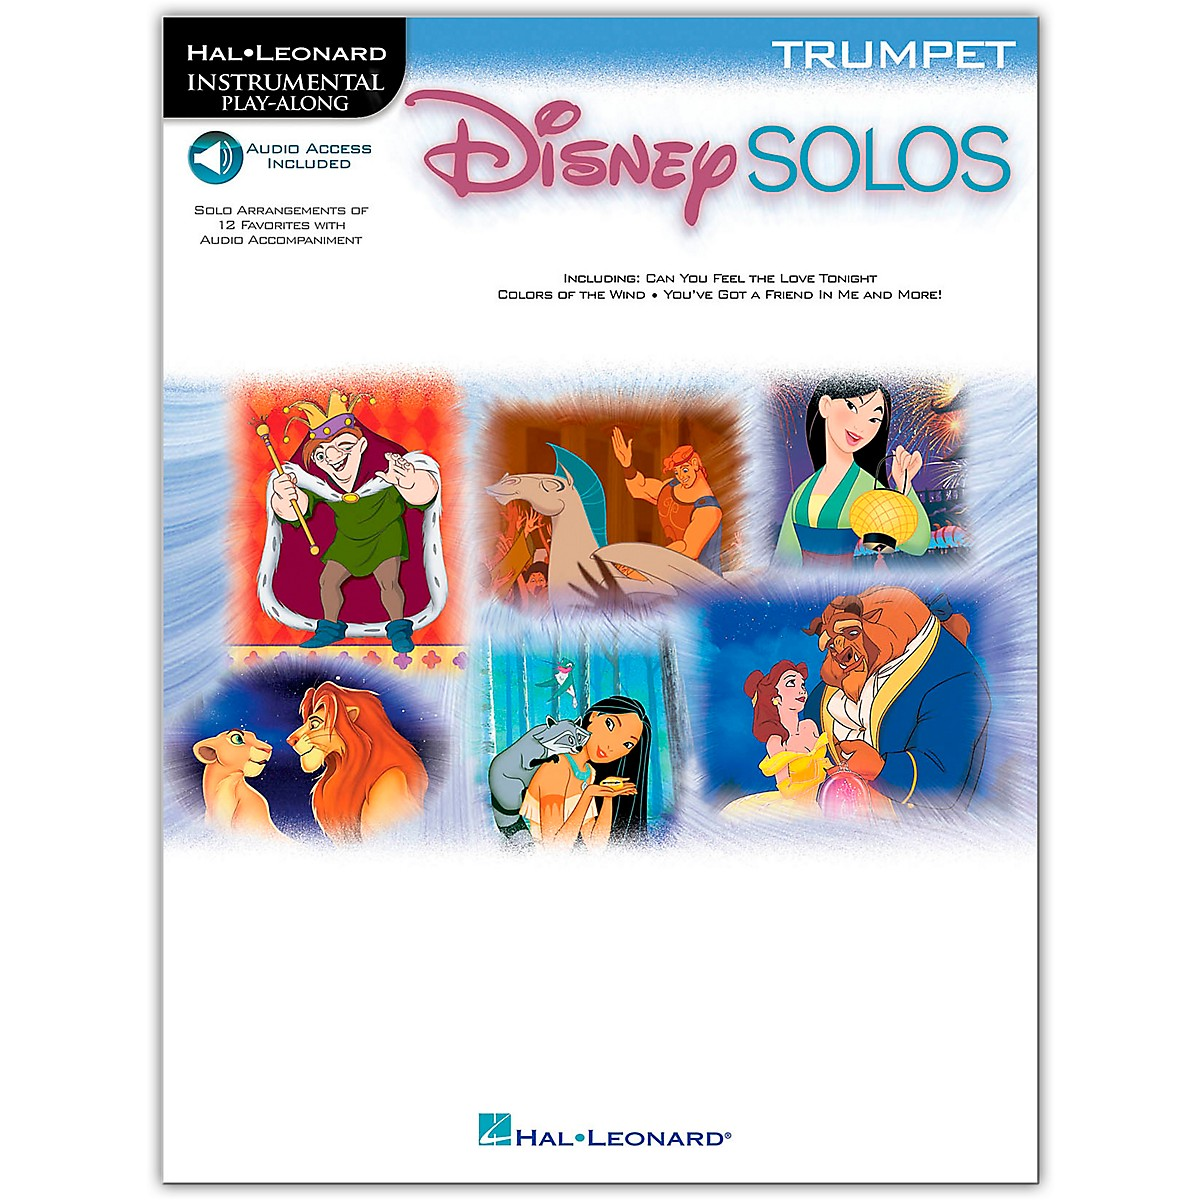 Hal Leonard Play-Along Disney Solos Book with Online Audio Trumpet